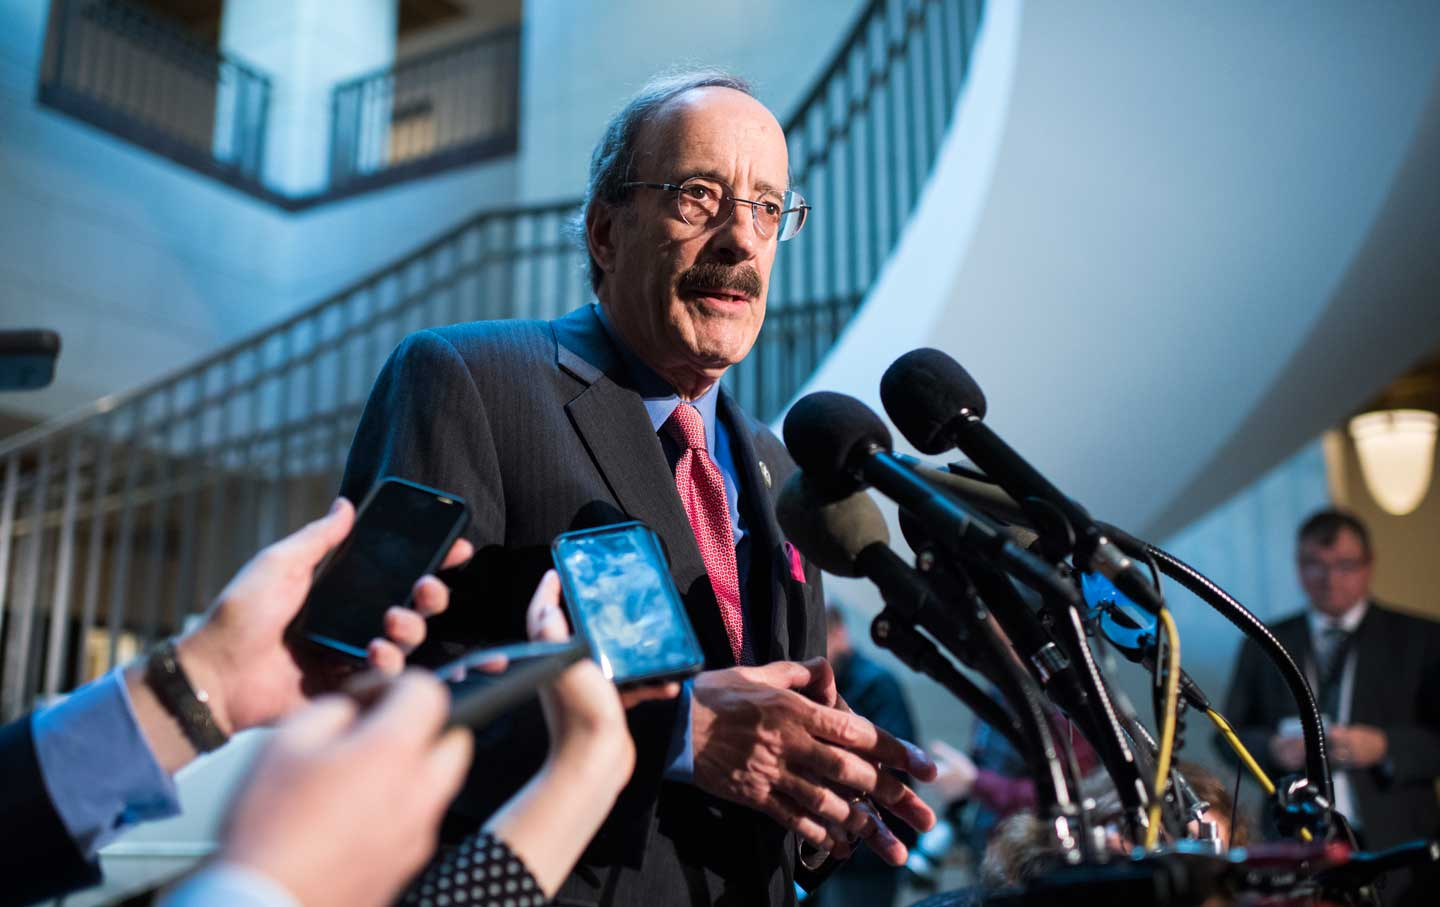 Representative Eliot Engel